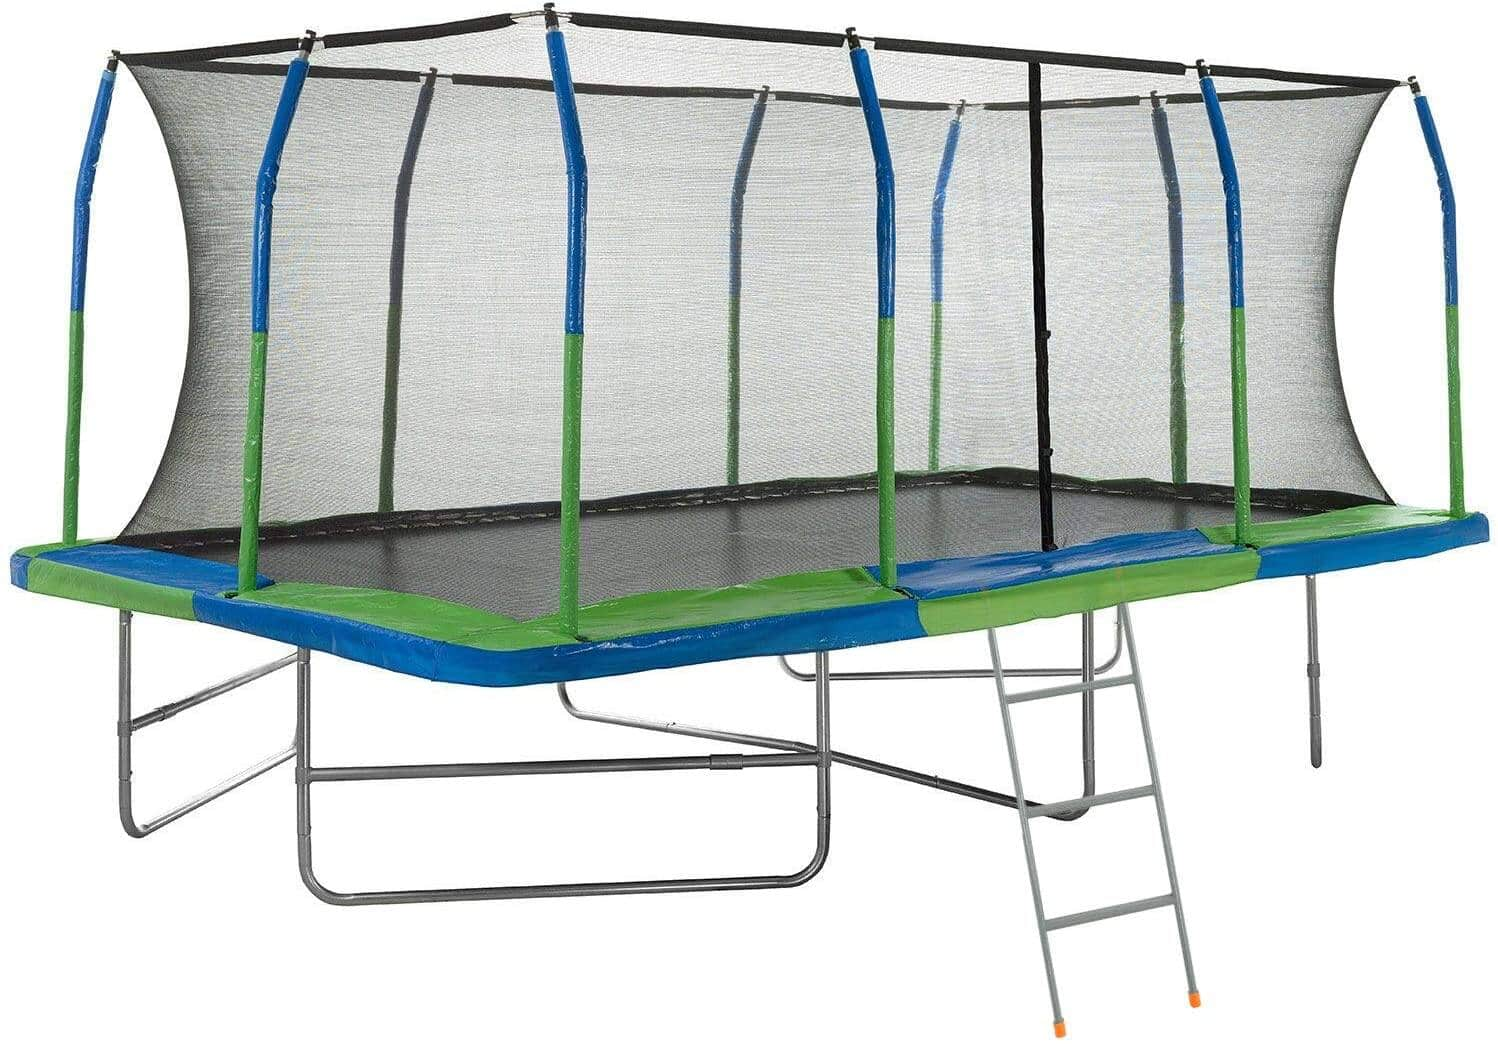 Upper Bounce Rectangular Trampoline 10' x 17' w/ Ladder $799.99 + Free Shipping